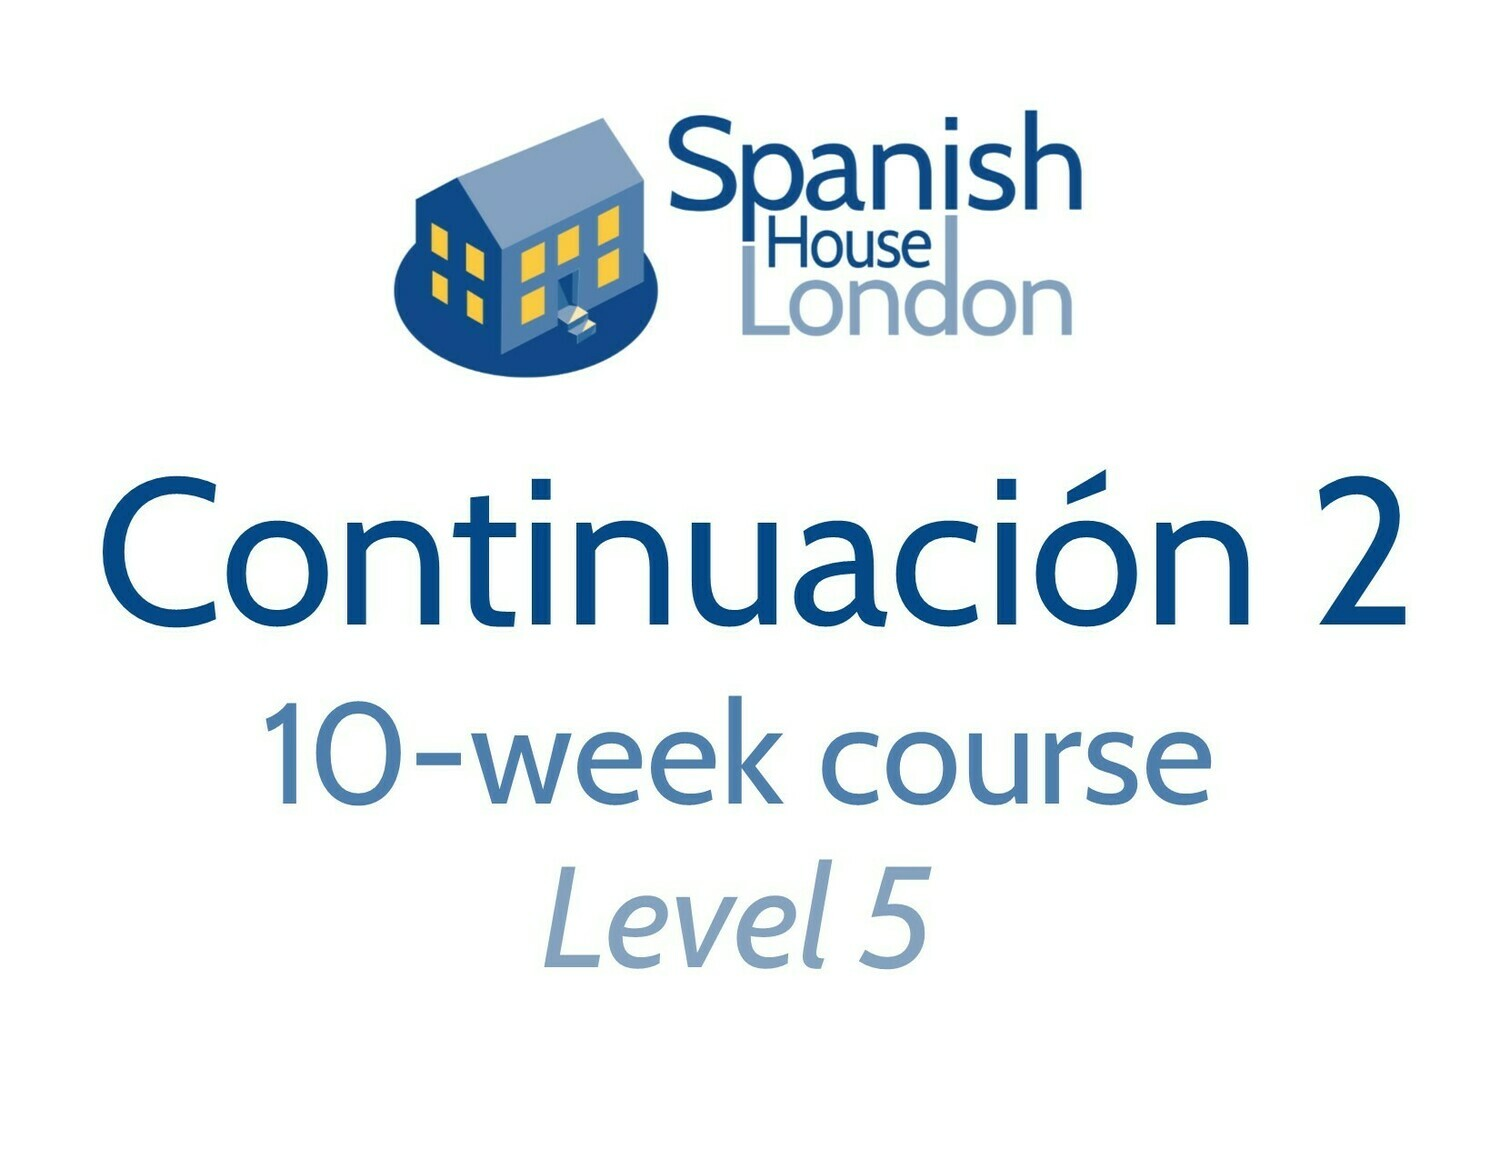 Continuacion 2 Course starting on 23rd March at 6pm